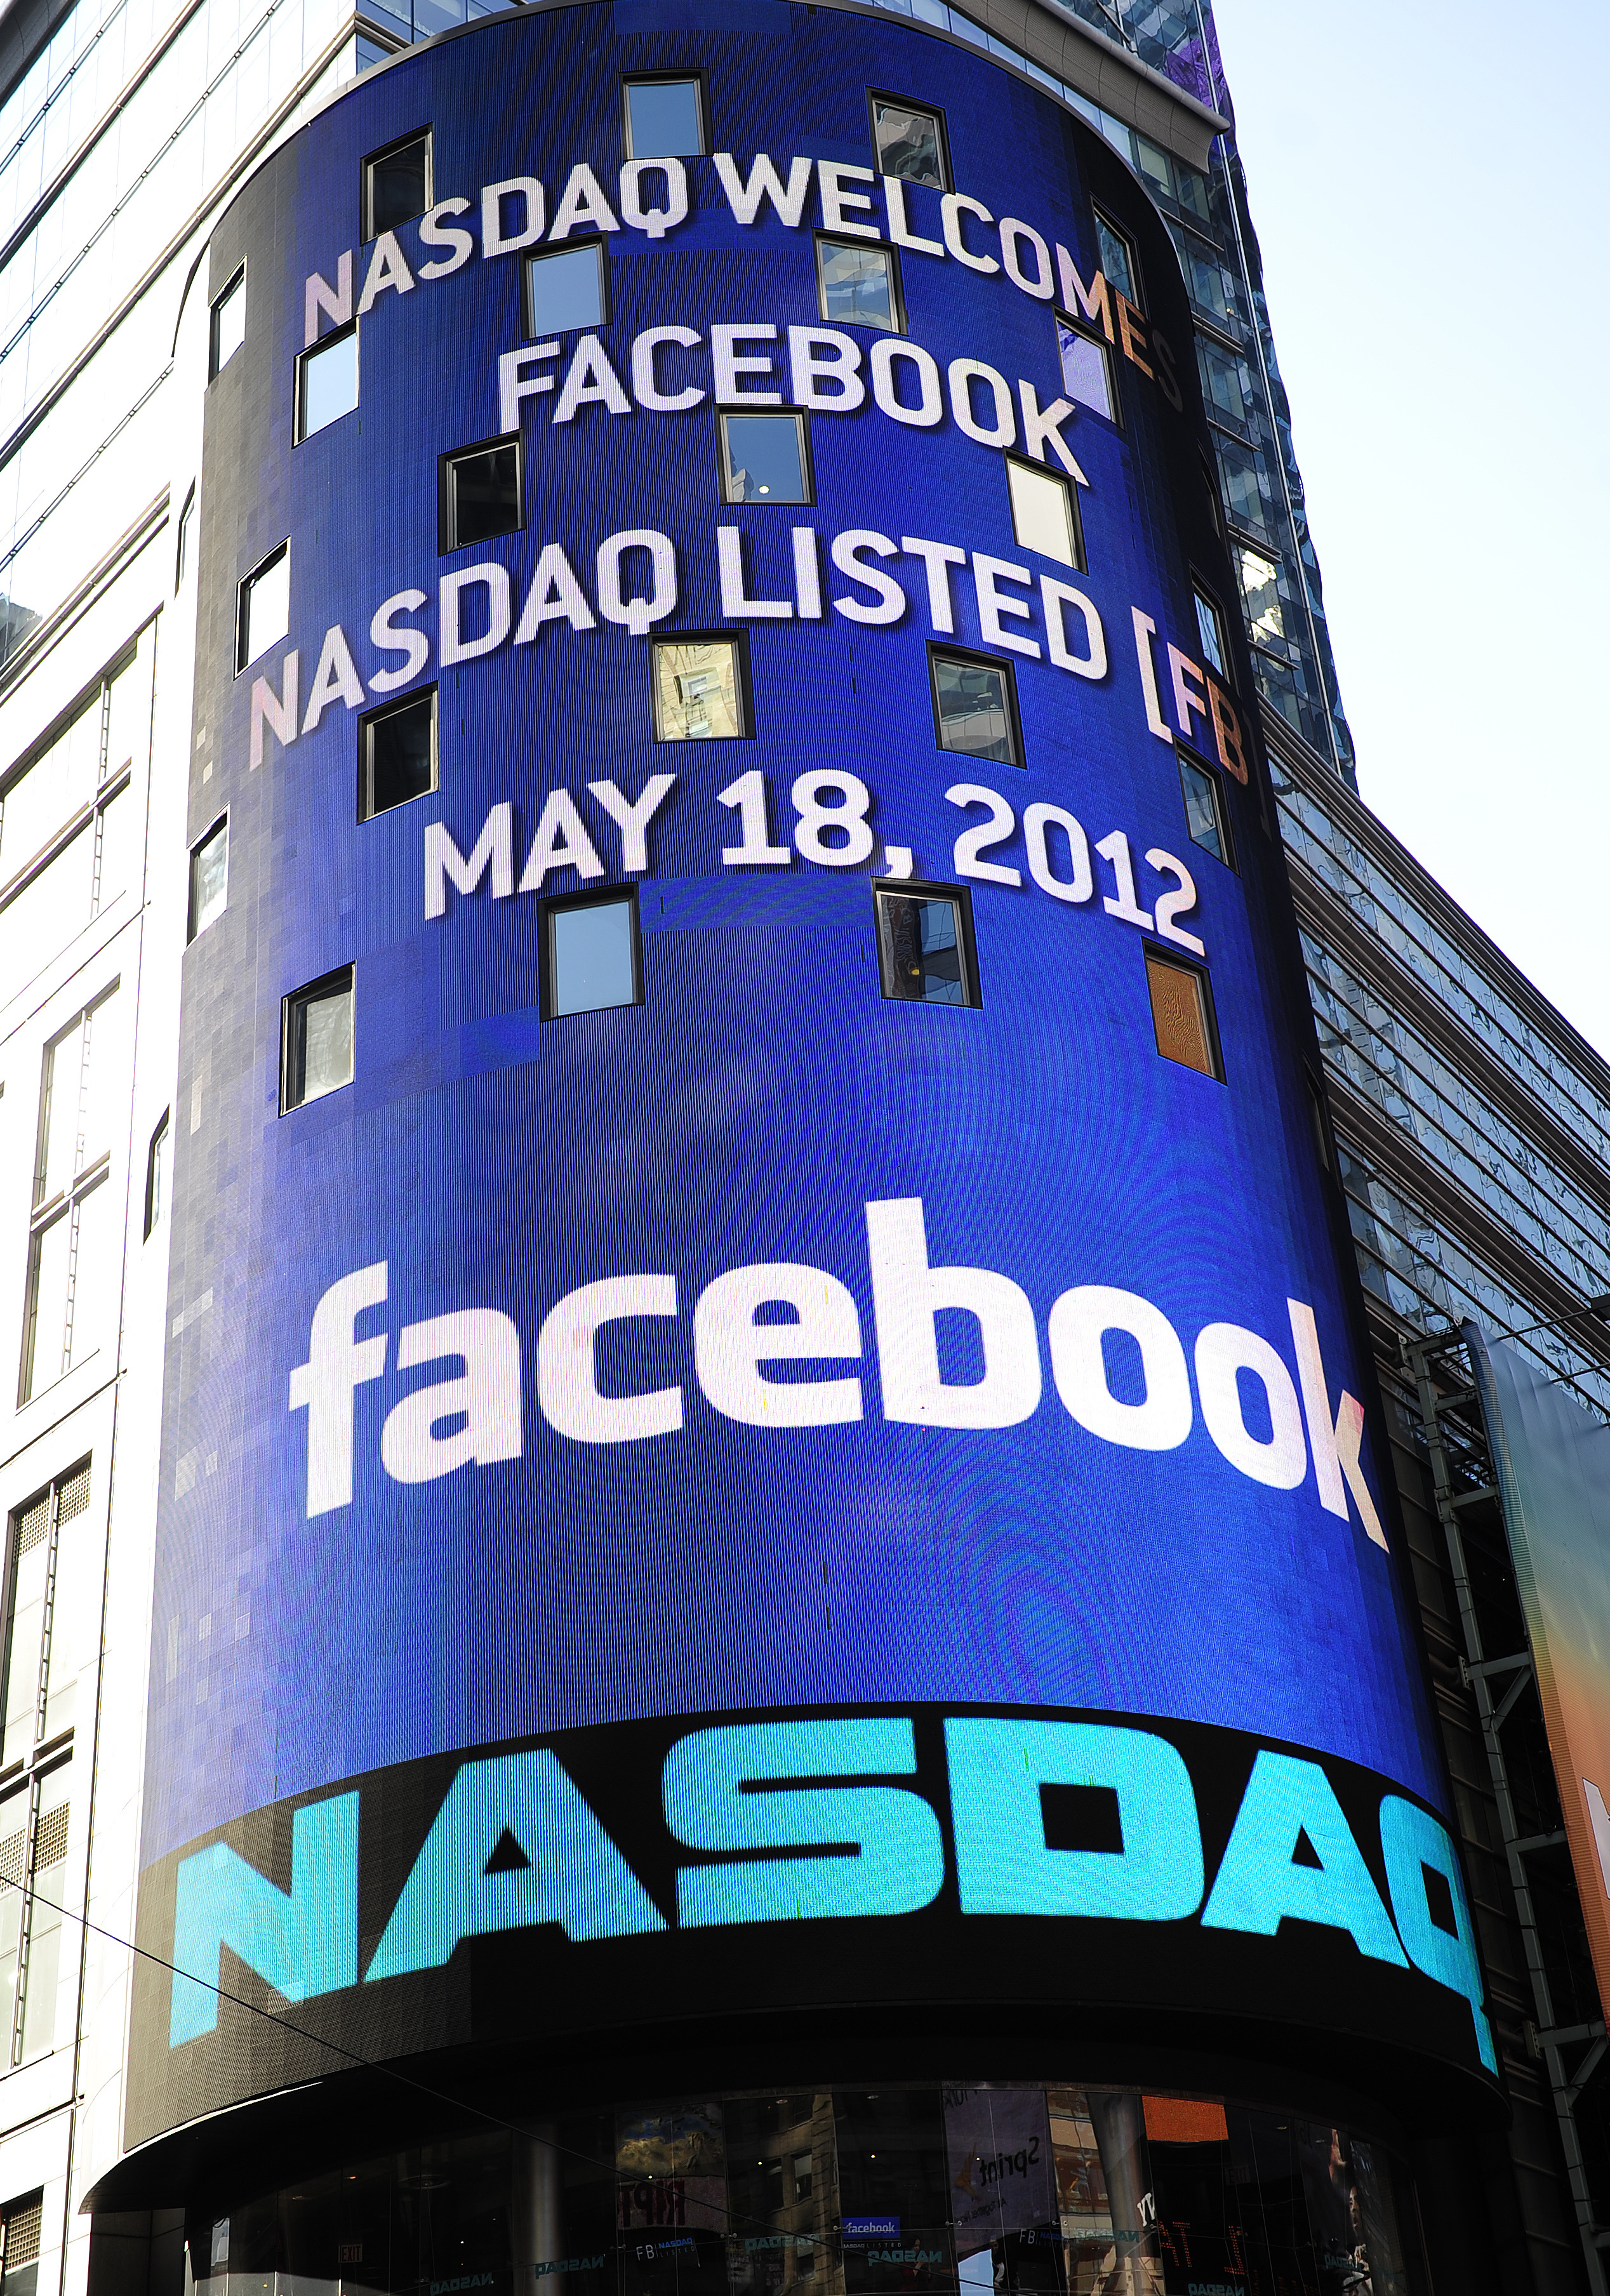 facebook ipo case study Despite its success in the social-networking space, facebook inc's may 2012 ipo was largely considered a failure facebook faced multiple lawsuits and its share price had dropped significantly adversaries contended that facebook had misled investors and violated securities laws were the .